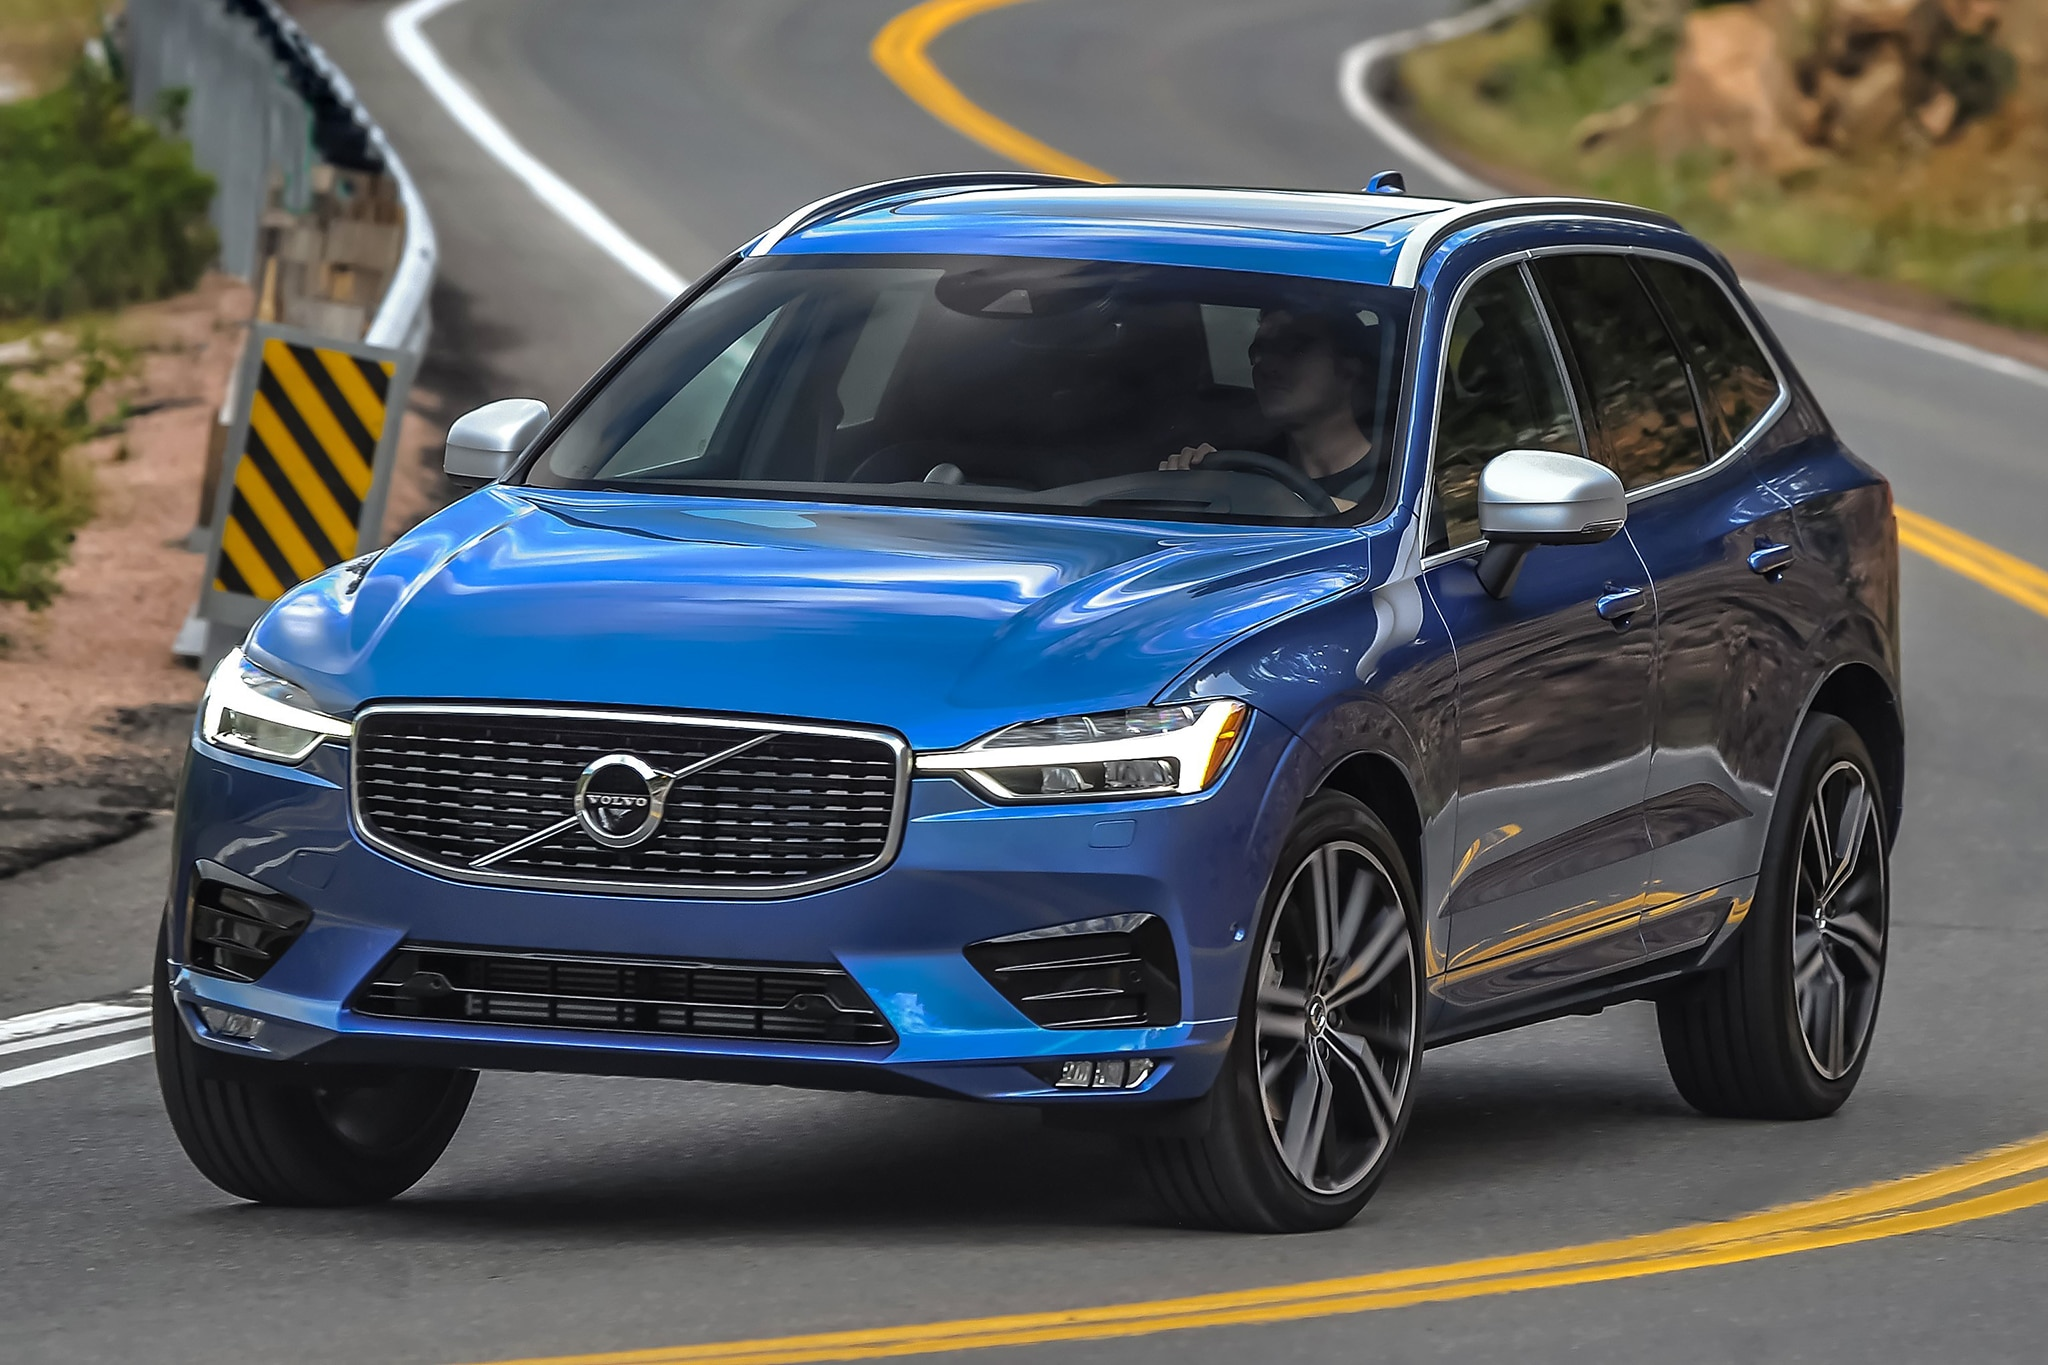 2018 Volvo XC60 T8 R Design Front Three Quarter In Motion 02 1